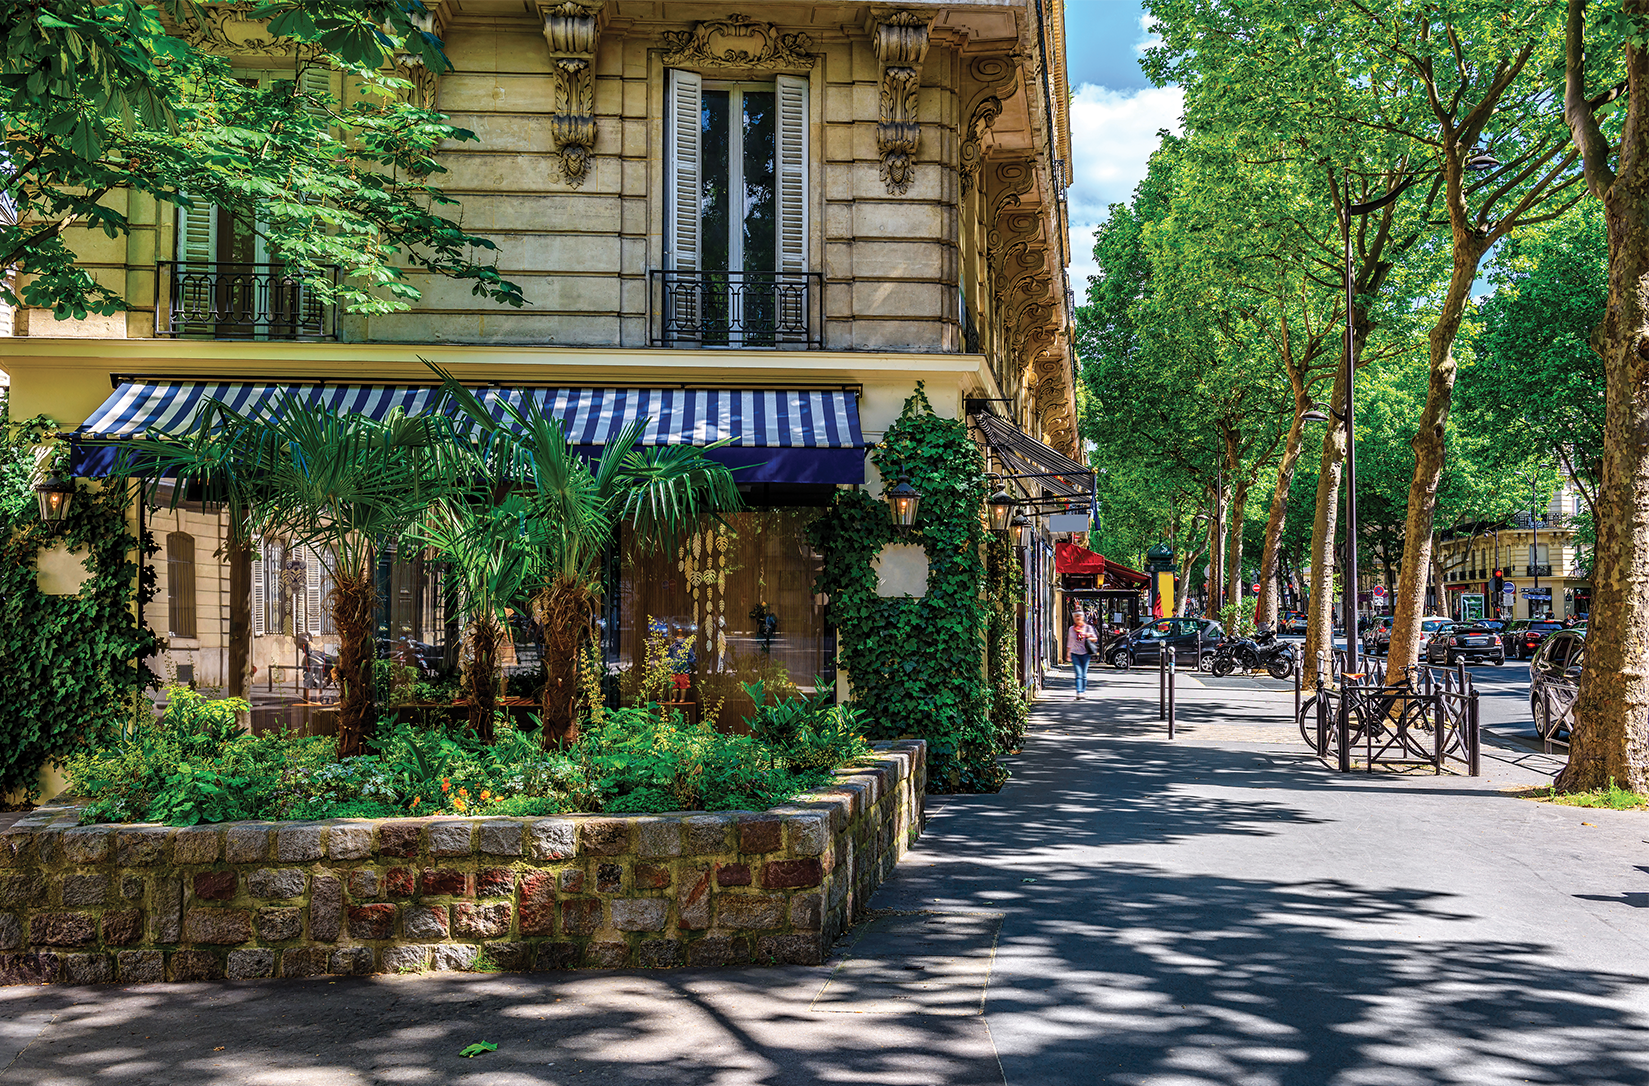 Boulevard Saint-Germain in Paris, France